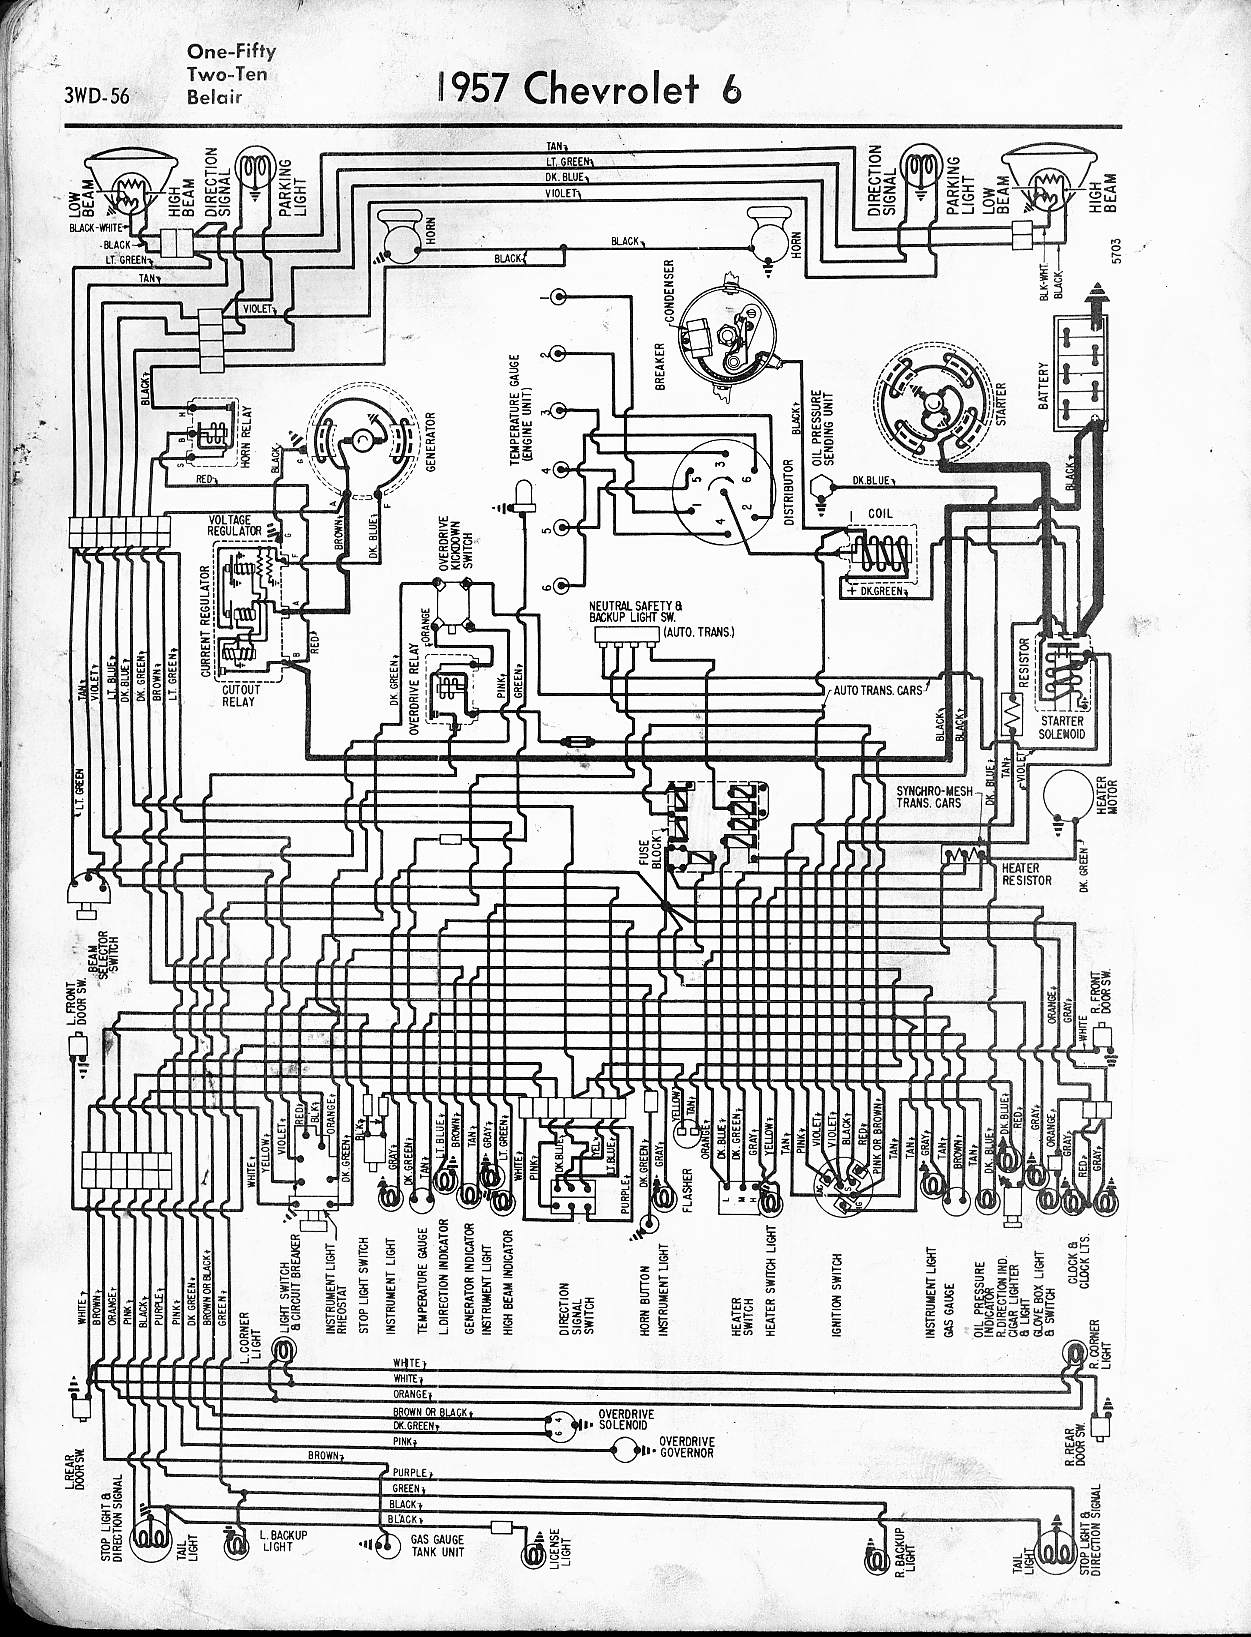 1957 chevy bel air wiring diagram all wiring diagram 1957 Chevy Bel Air Power Steering